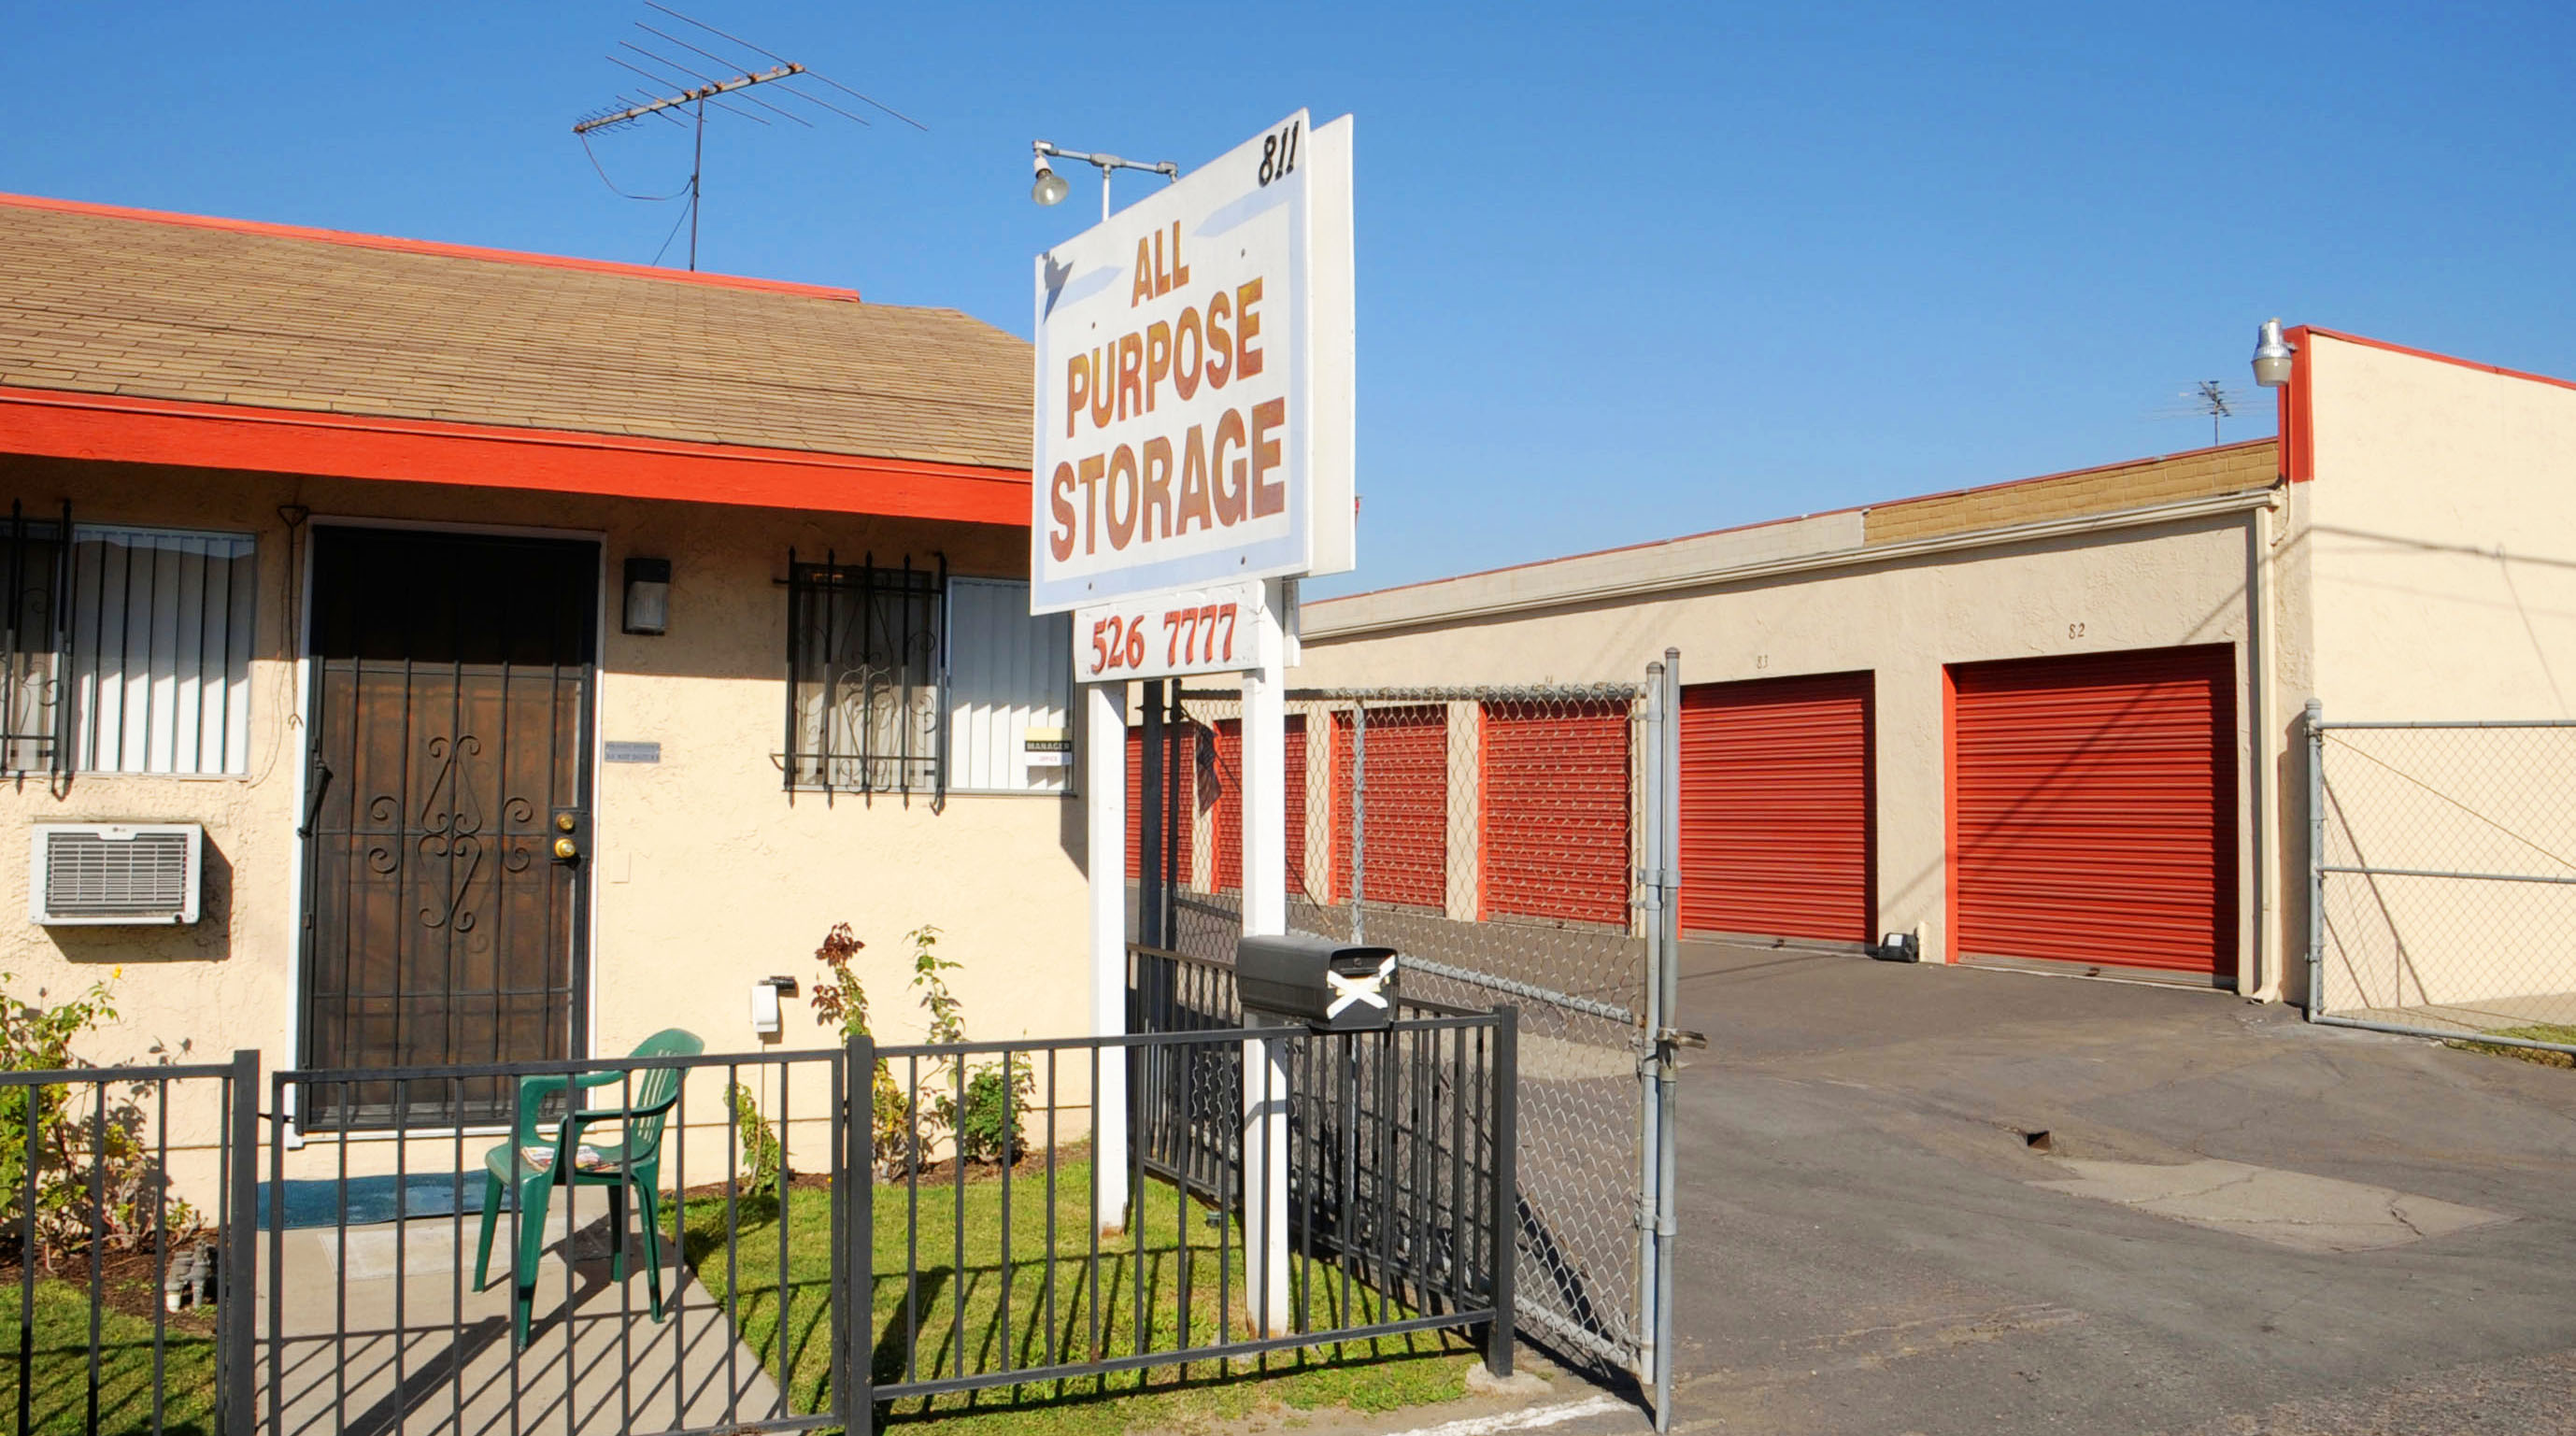 Storage units at All Purpose Storage in Fullerton CA